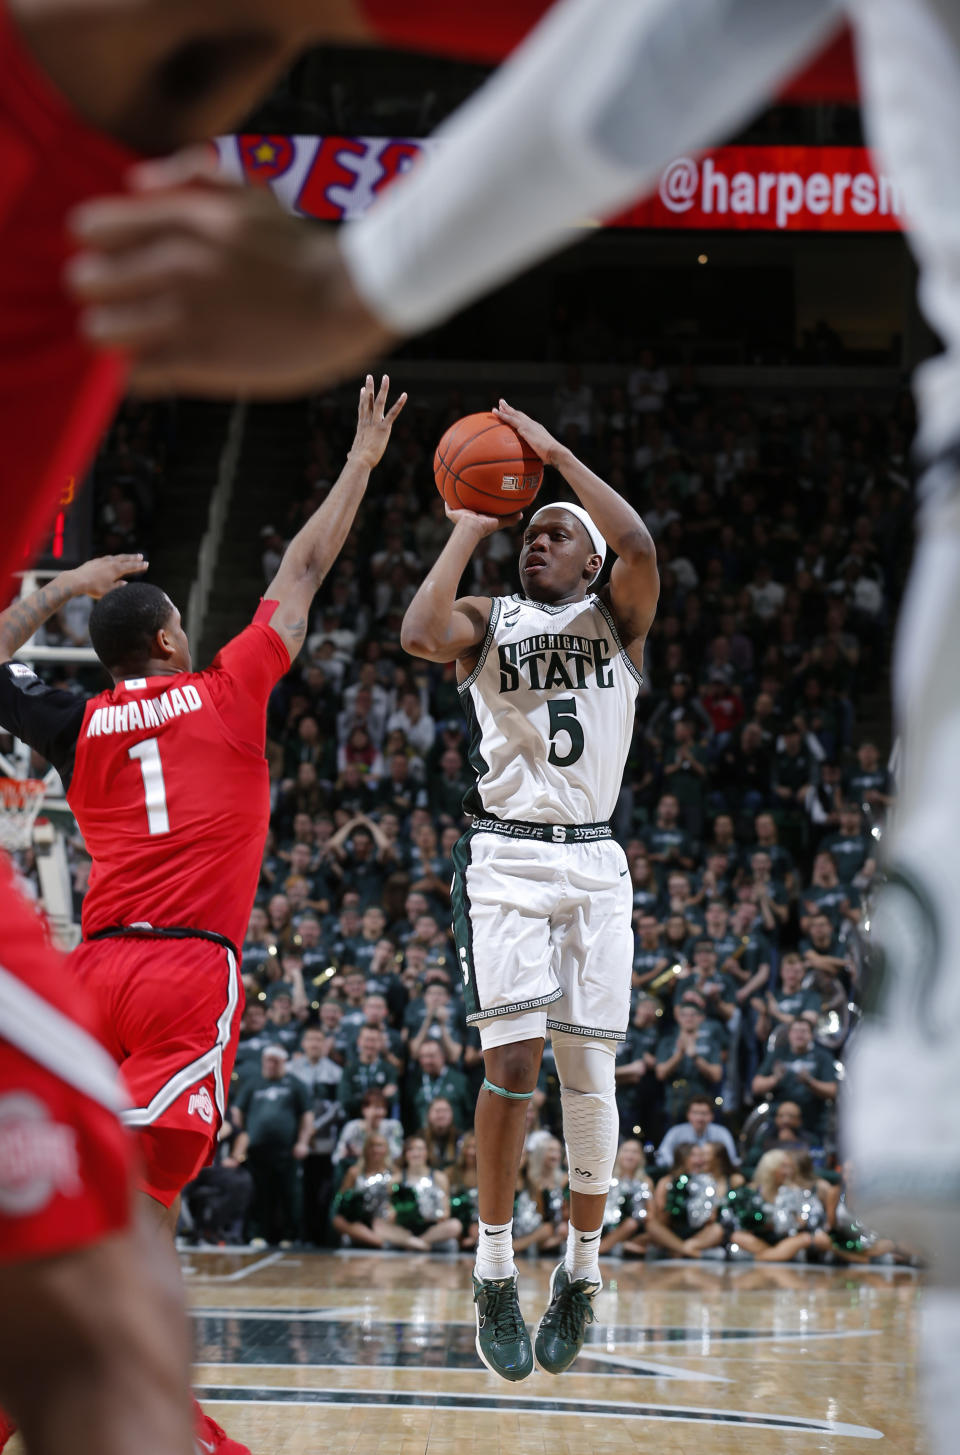 Michigan State's Cassius Winston (5) shoots against Ohio State's Luther Muhammad (1) during the second half of an NCAA college basketball game, Sunday, March 8, 2020, in East Lansing, Mich. (AP Photo/Al Goldis)